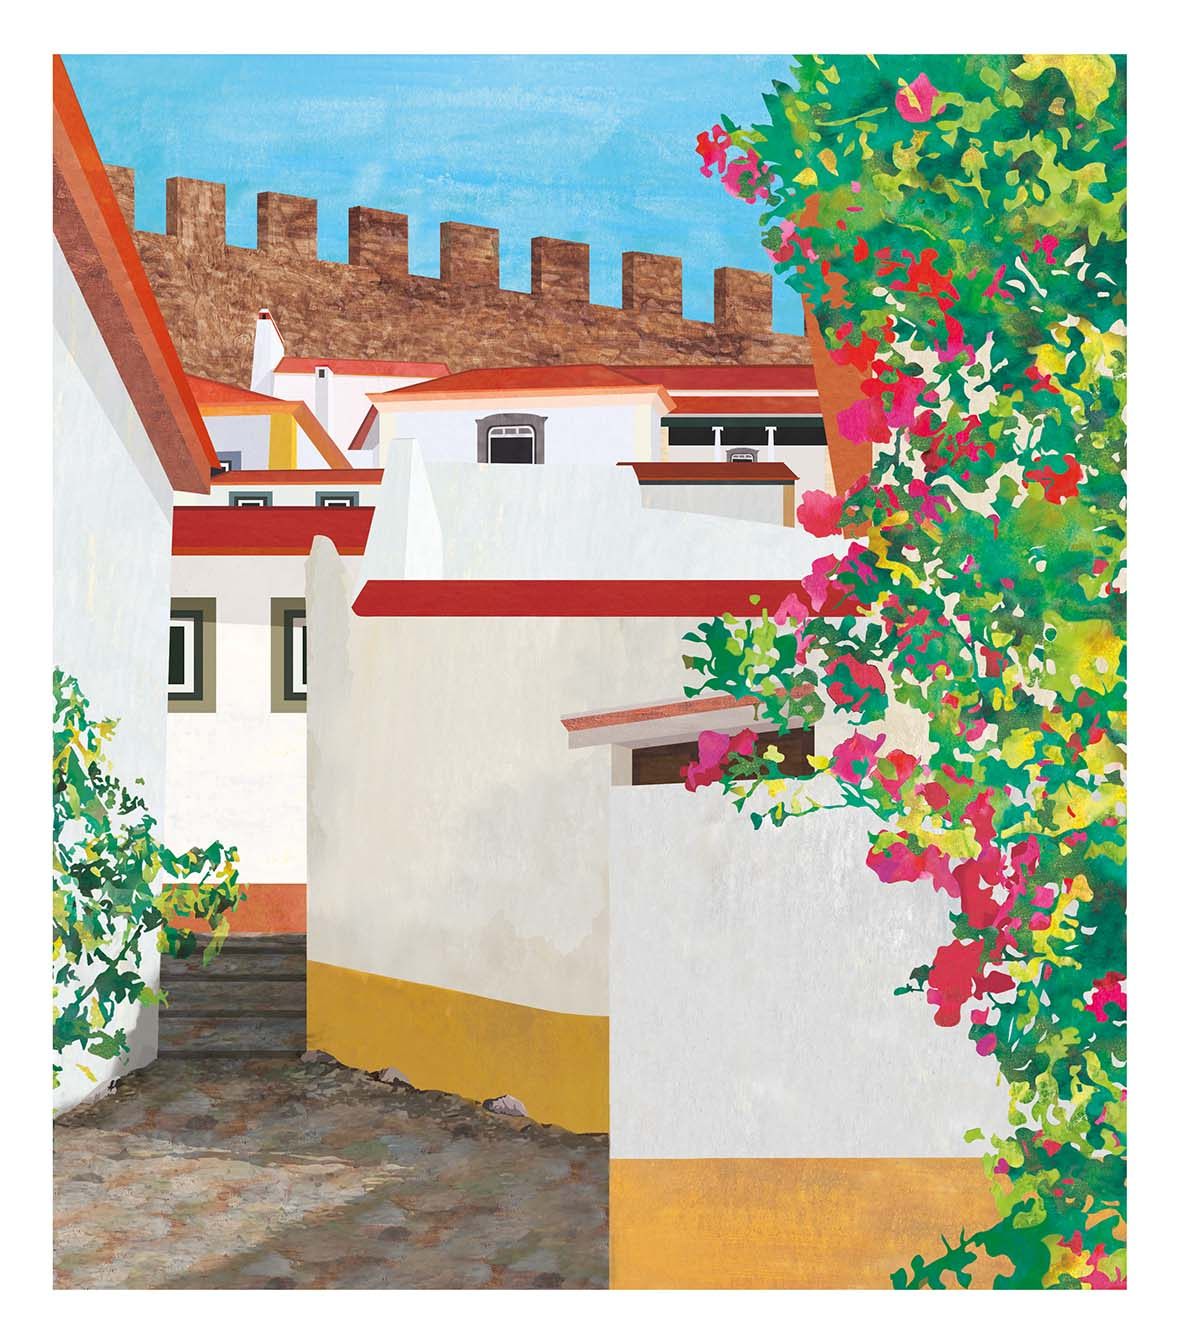 Teresa Arroyo Corcobado, Illustration, Portugal, Óbidos